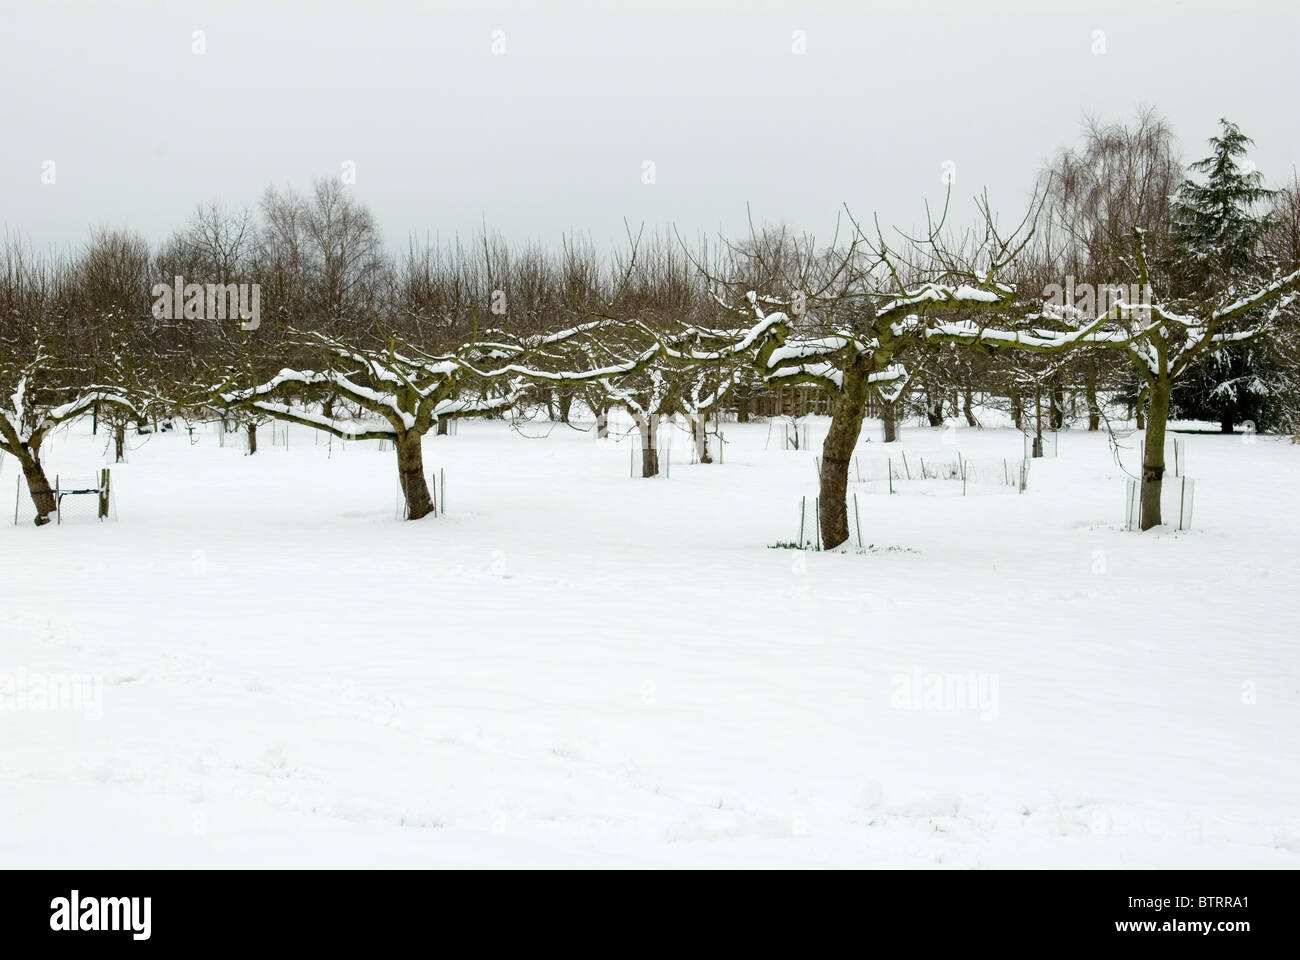 ORGANIC GARDENS RYTON WINTER IN THE APPLE ORCHARD - Stock Image